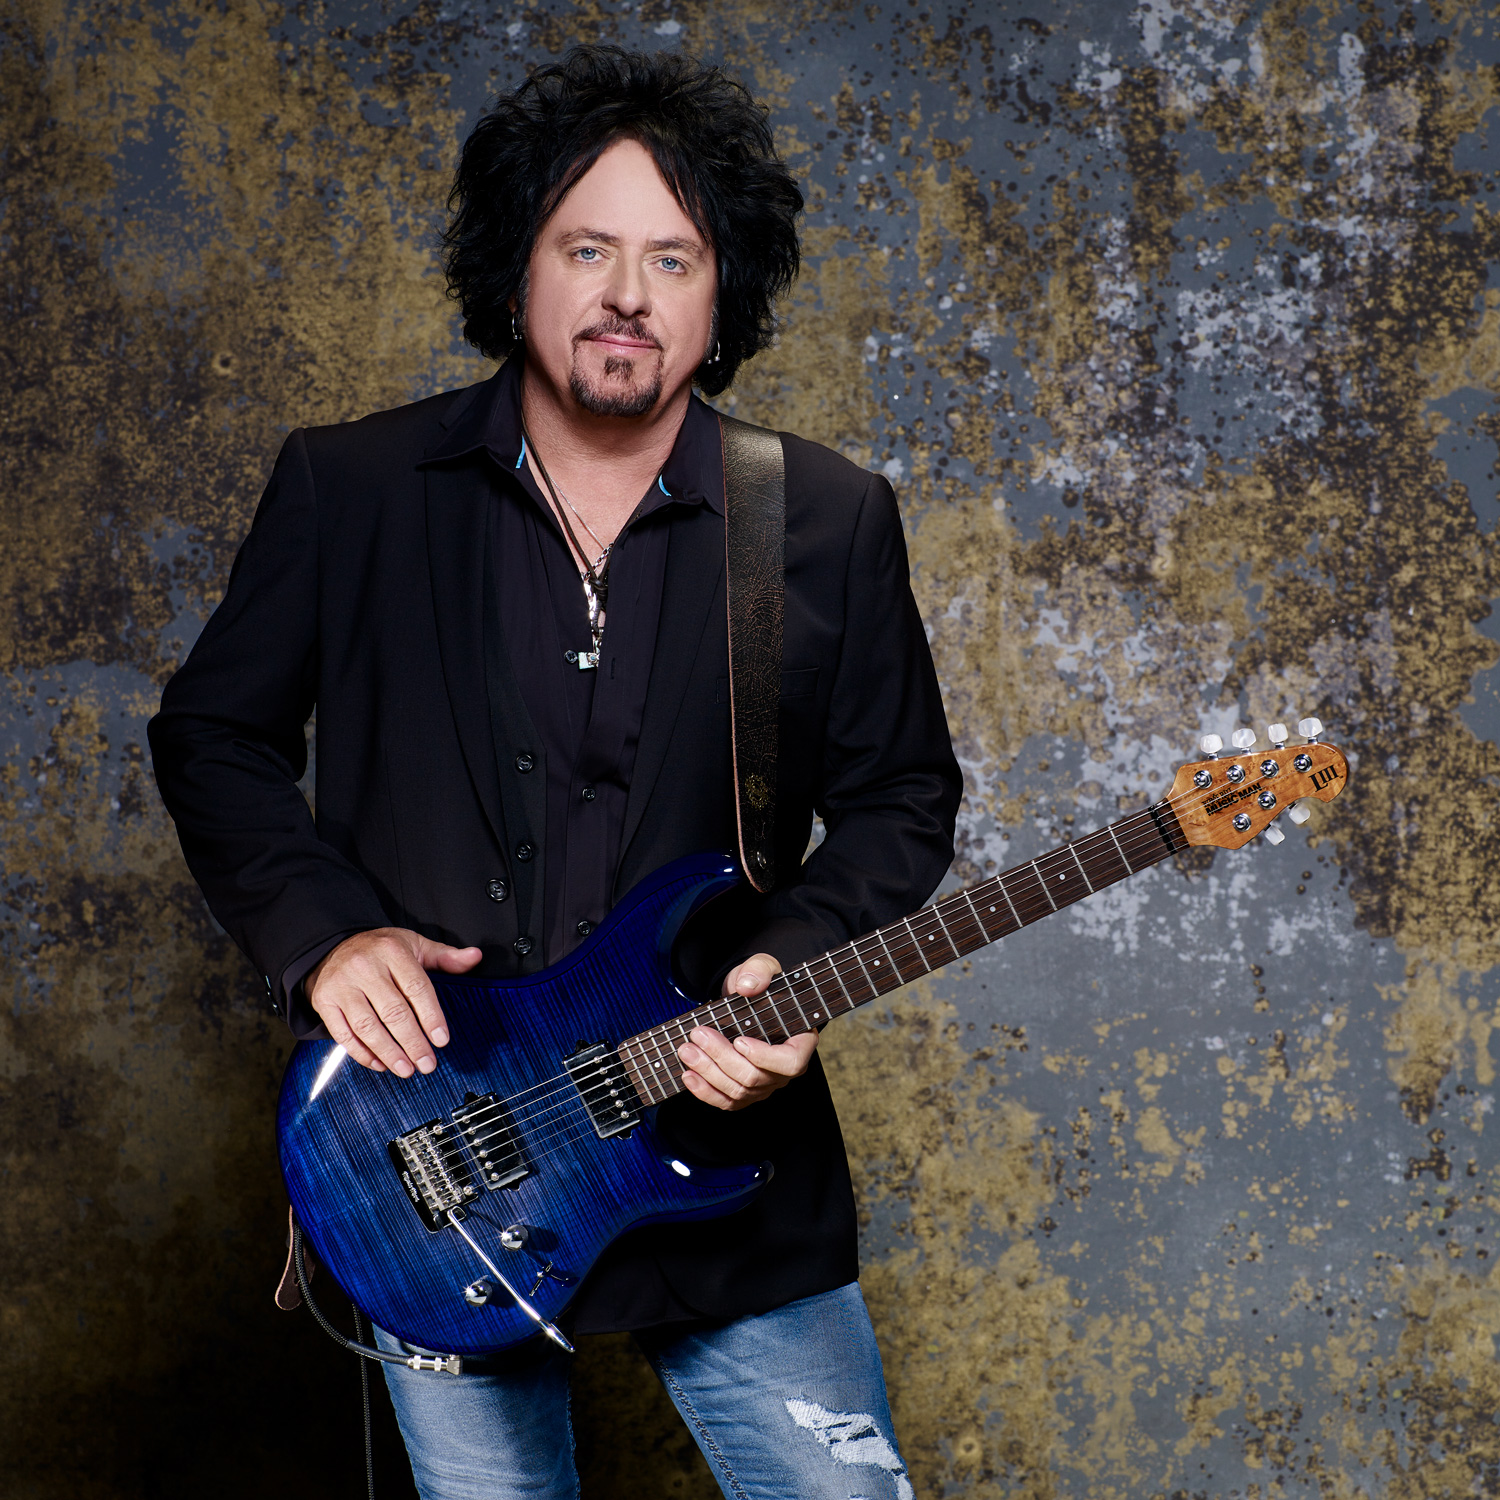 Steve Lukather photo by Larry DiMarzio